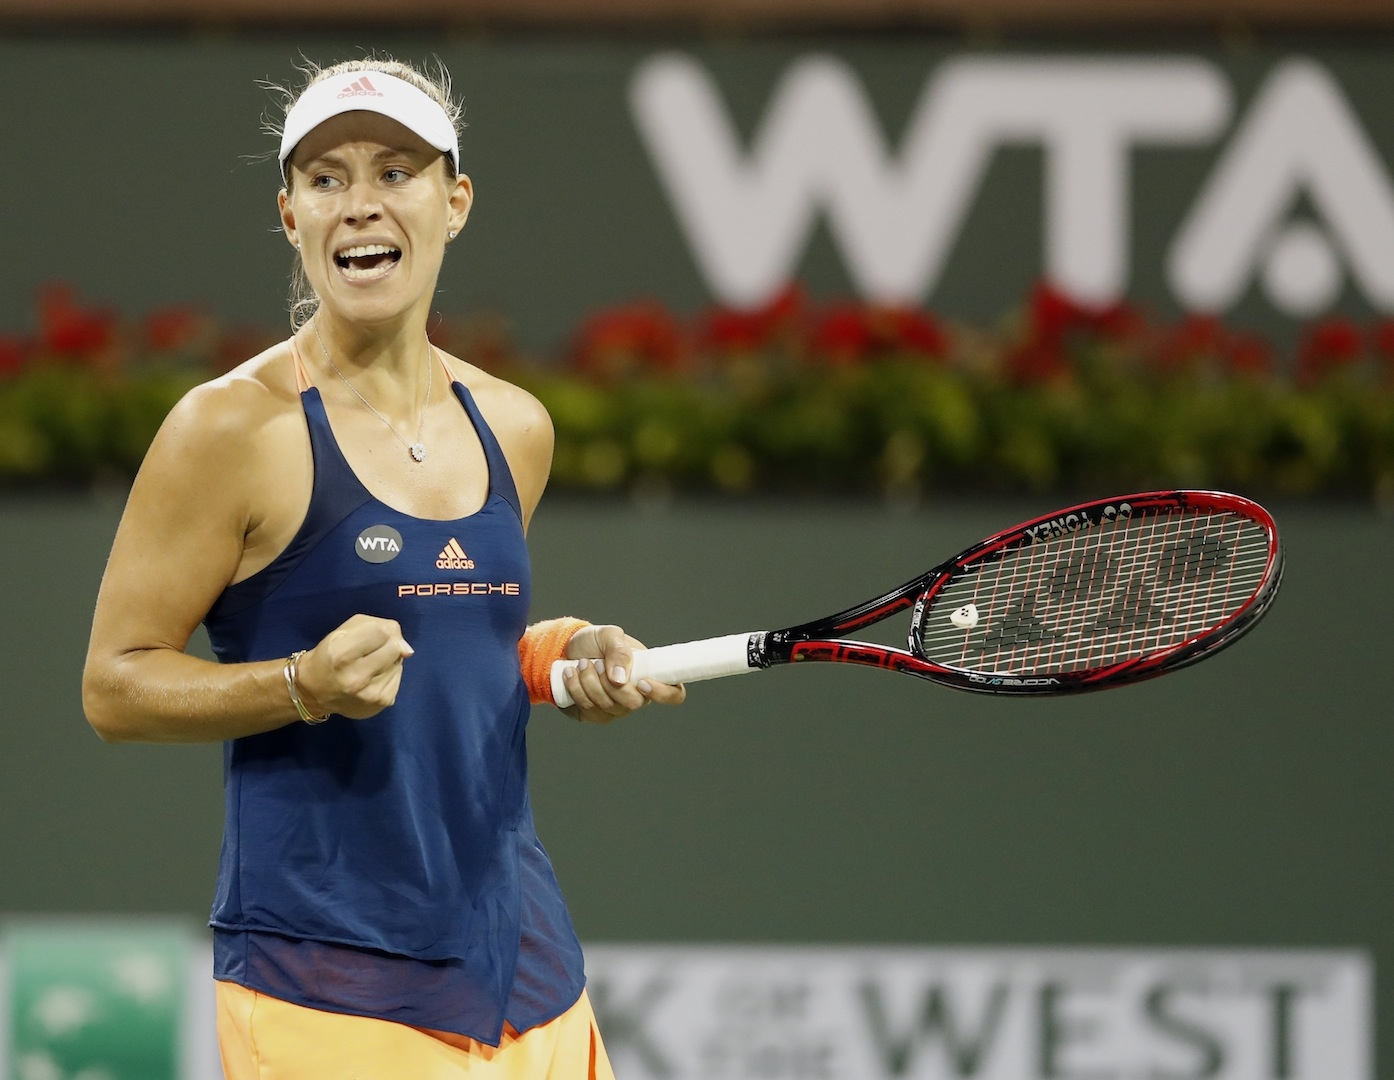 Angelique Kerber supera a Serena Williams en la clasificación. Foto: EFE